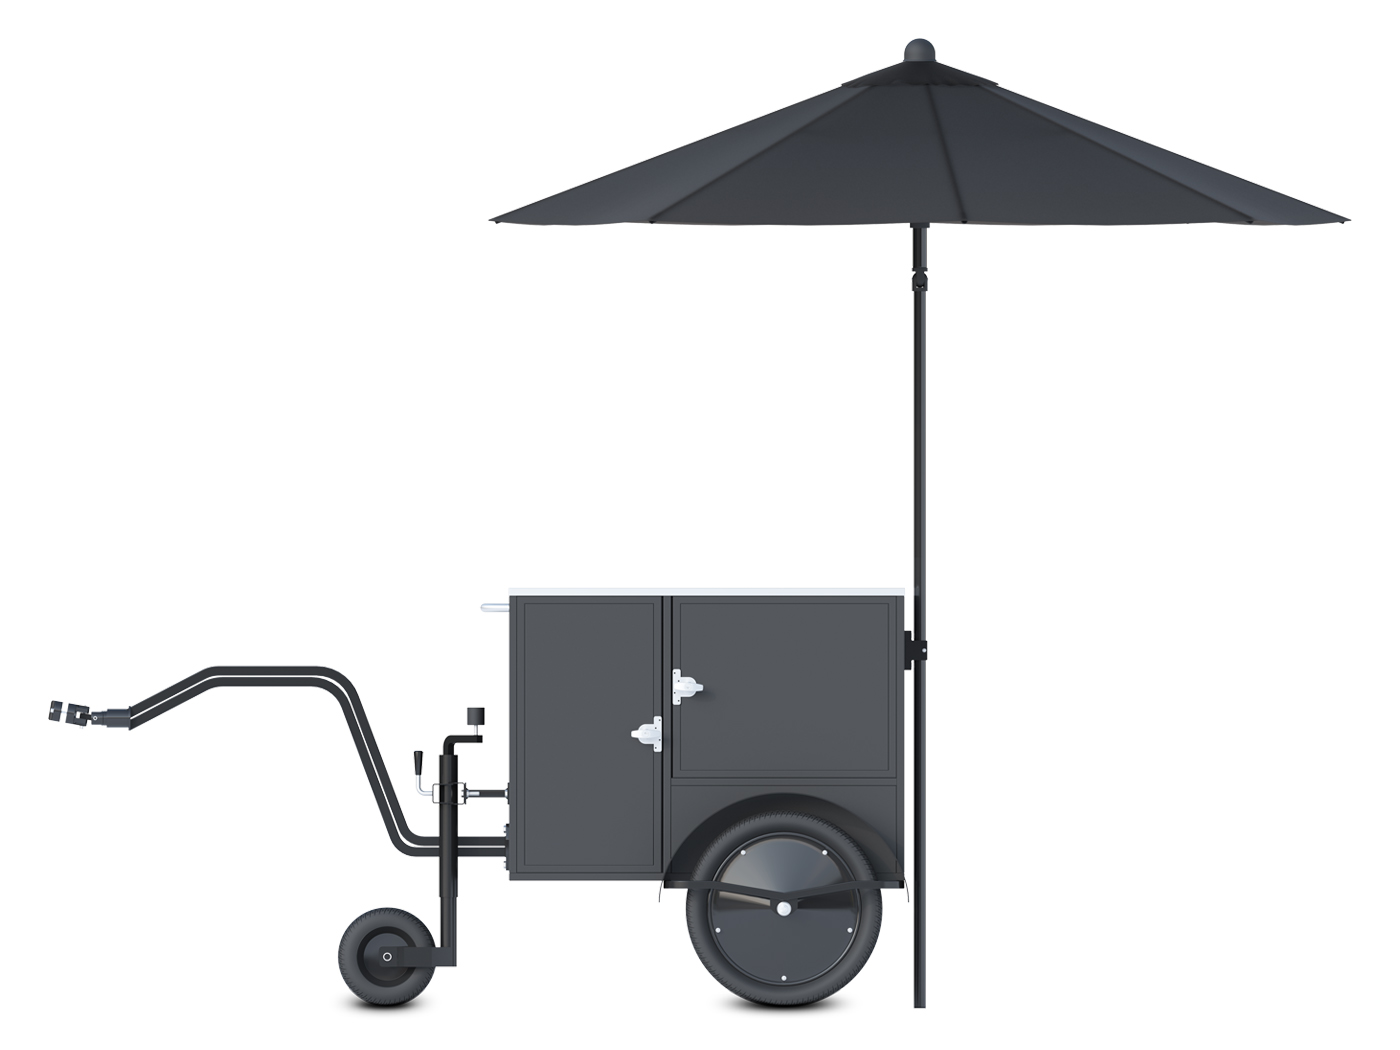 Small street vending cart towable by bicycle